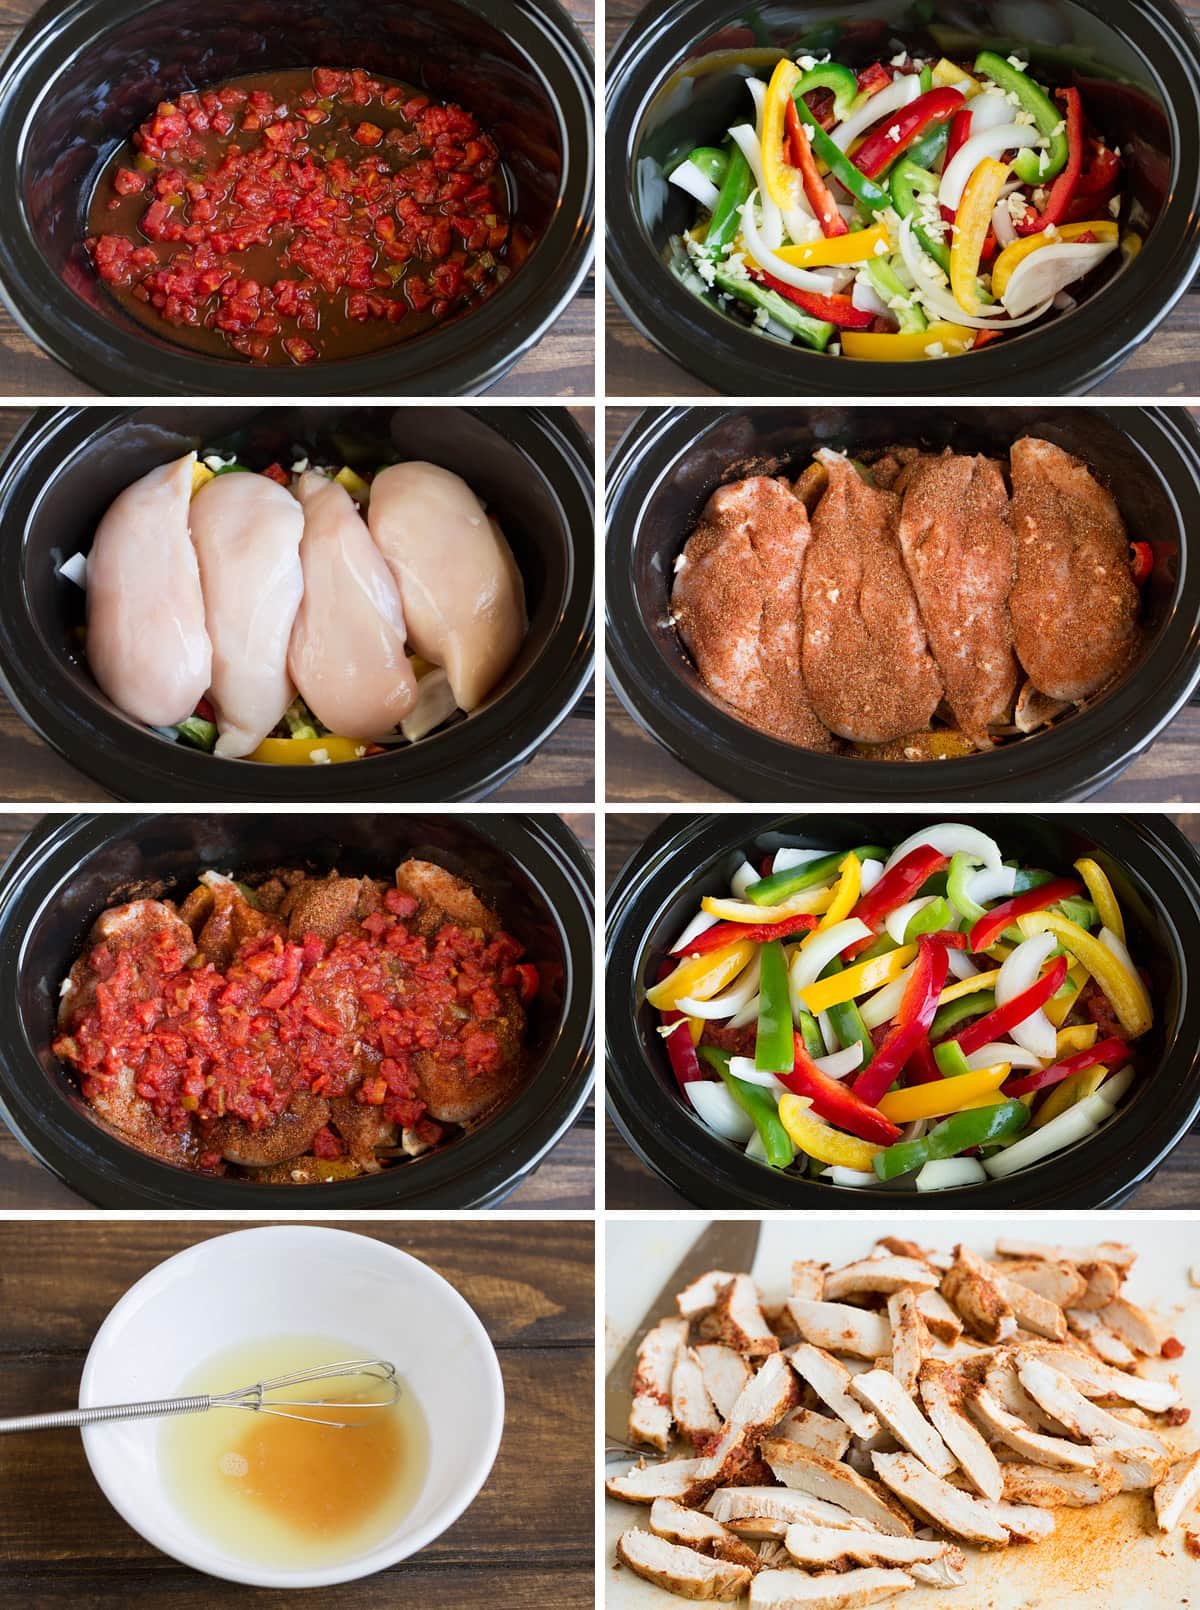 Steps to making chicken fajitas in the slow cooker